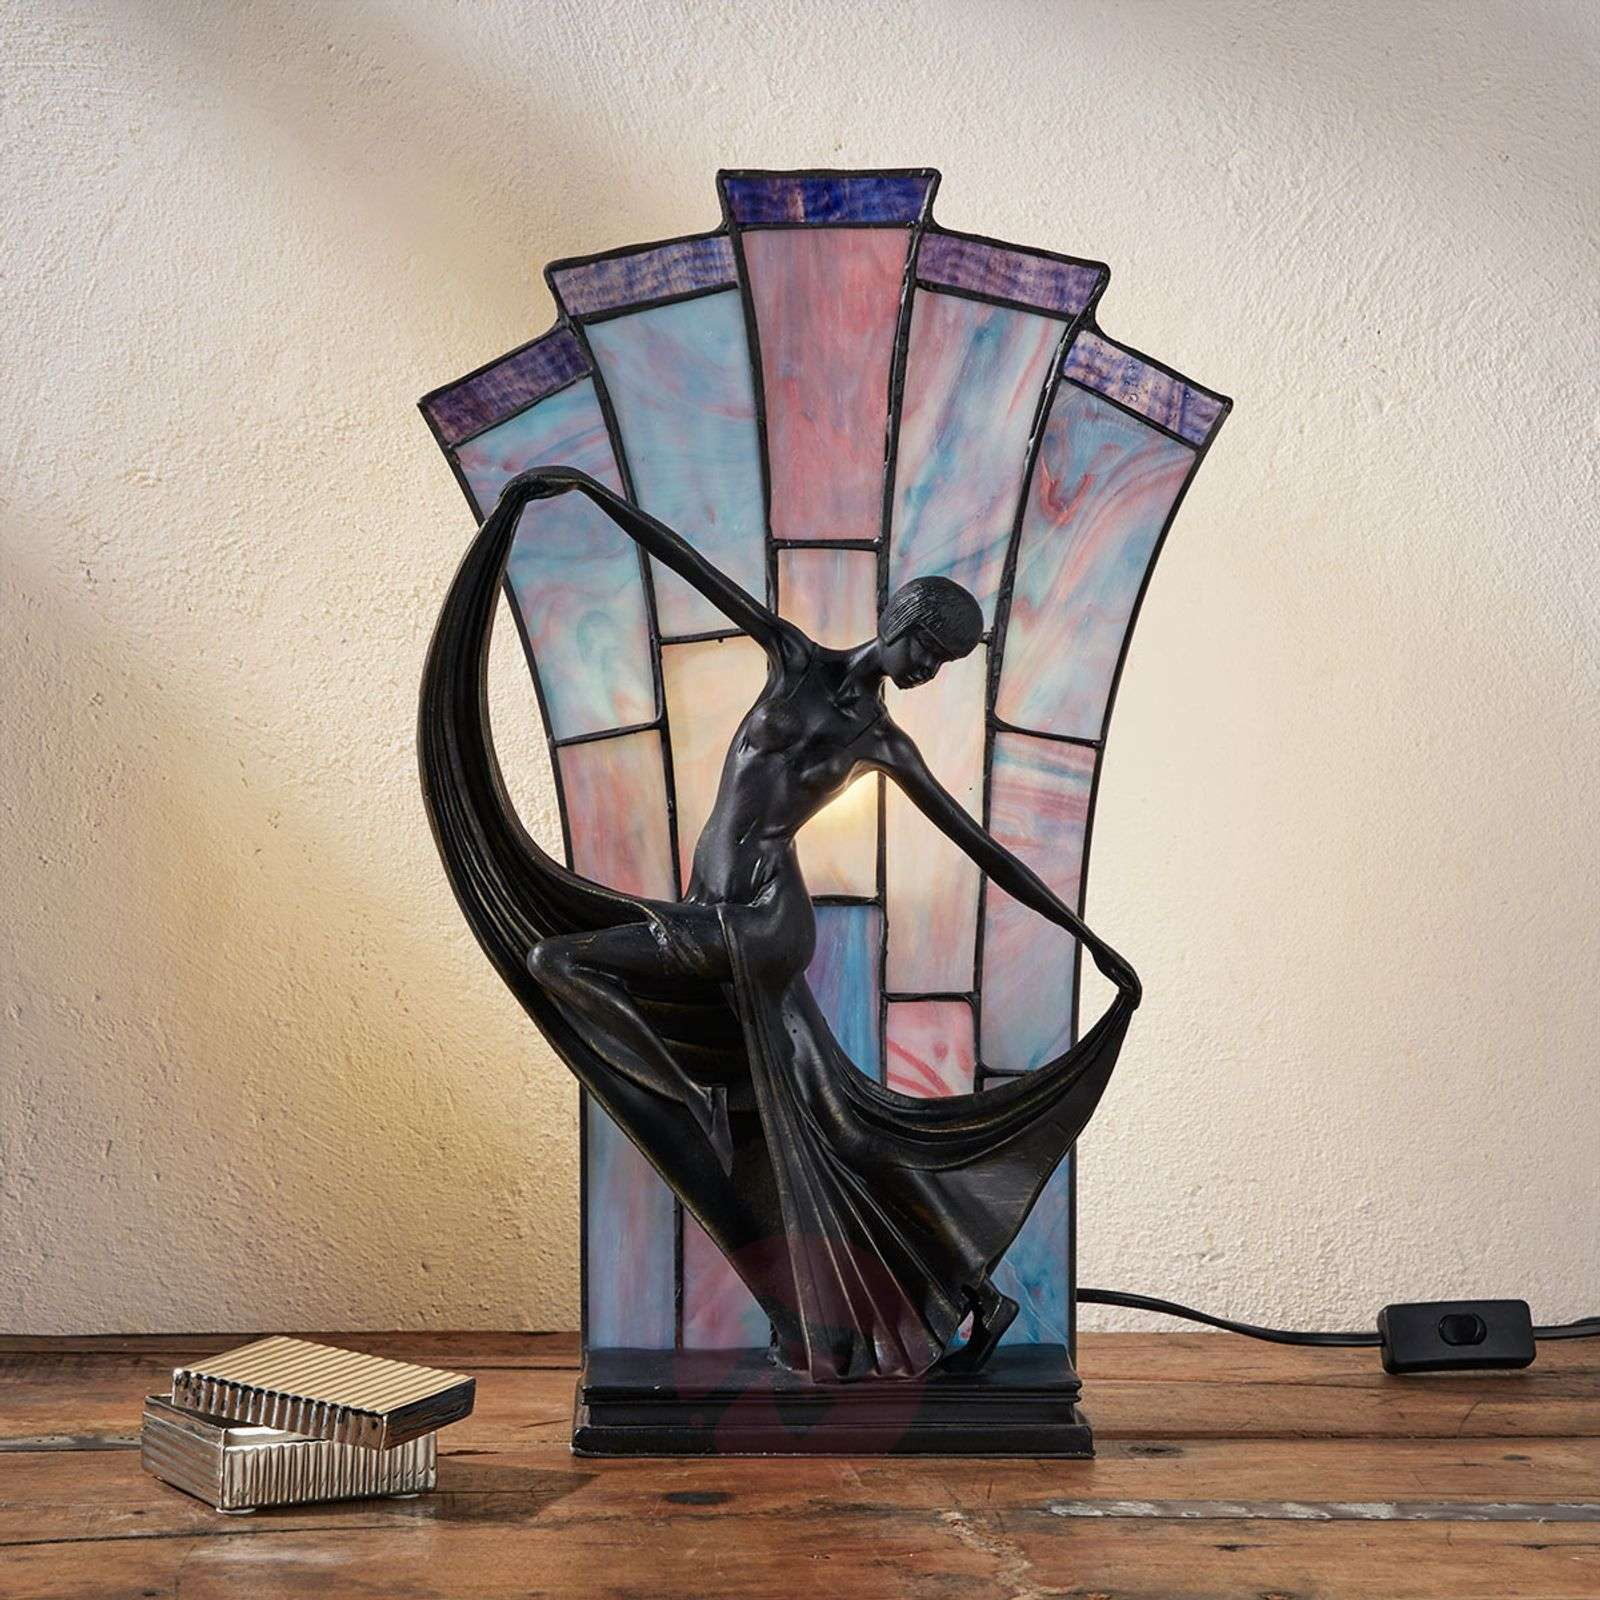 Graceful table lamp Flamina, Tiffany style-1032282-01